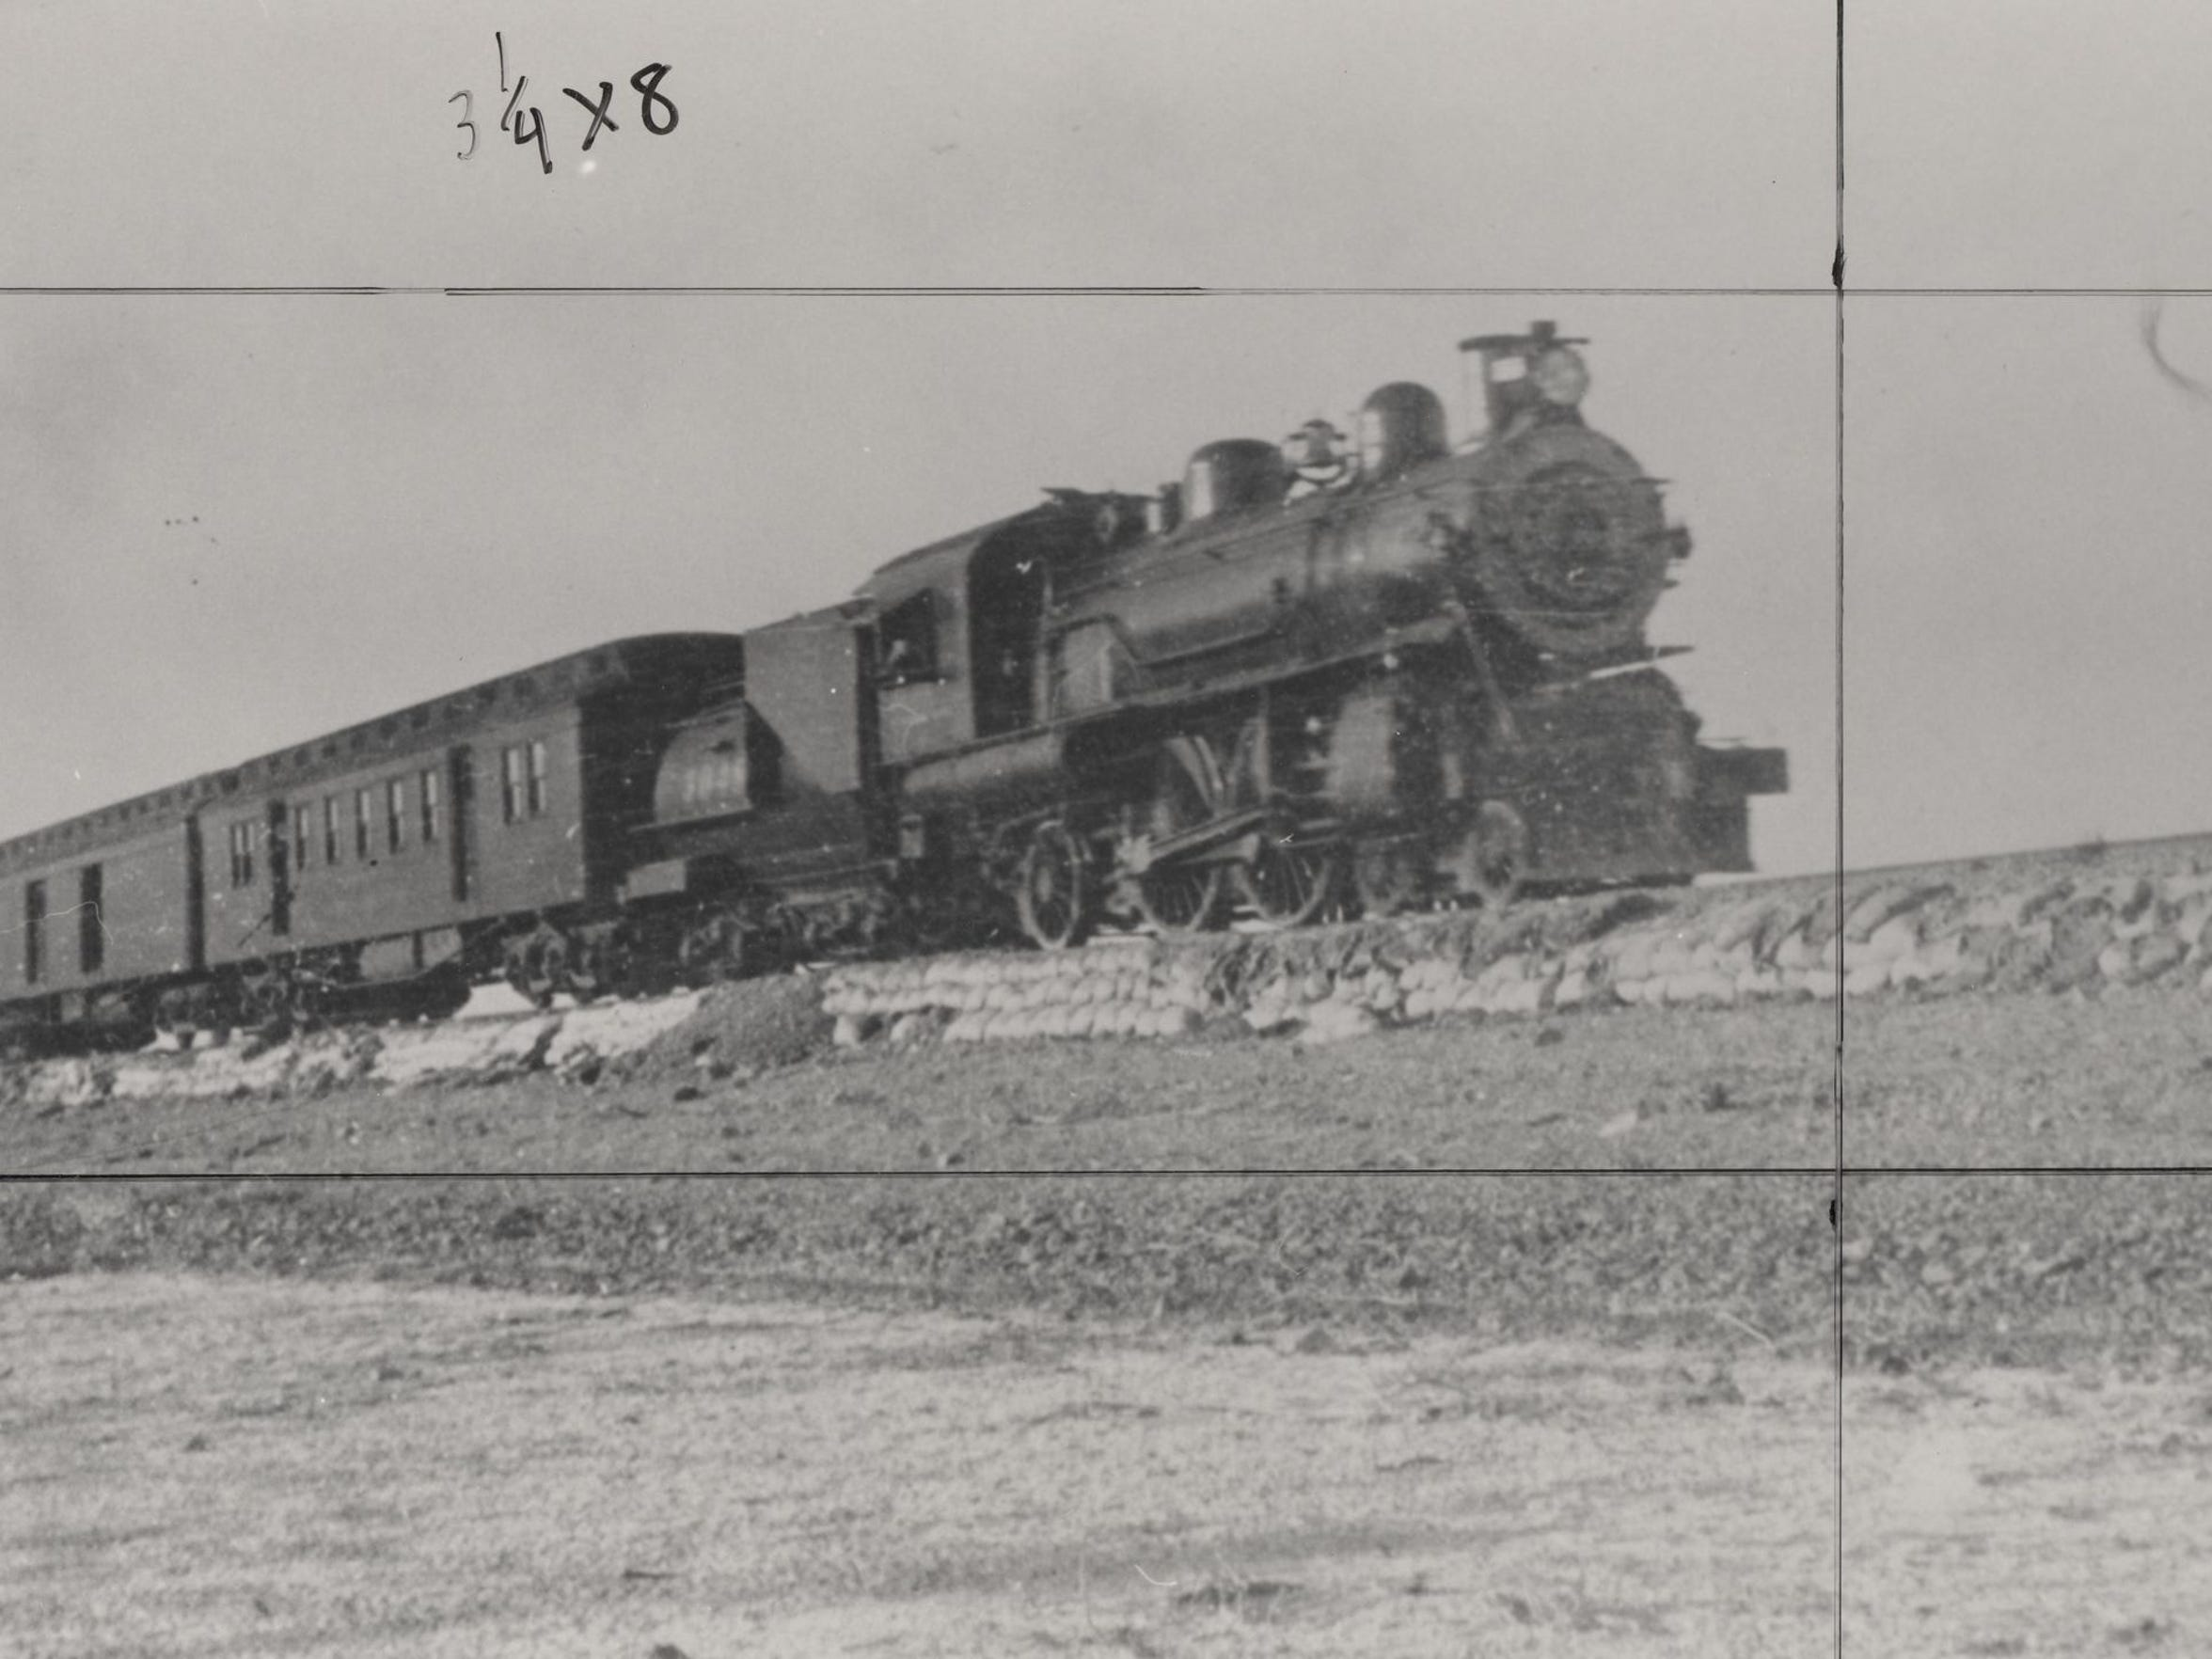 Southern Pacific's local line through the Coachella